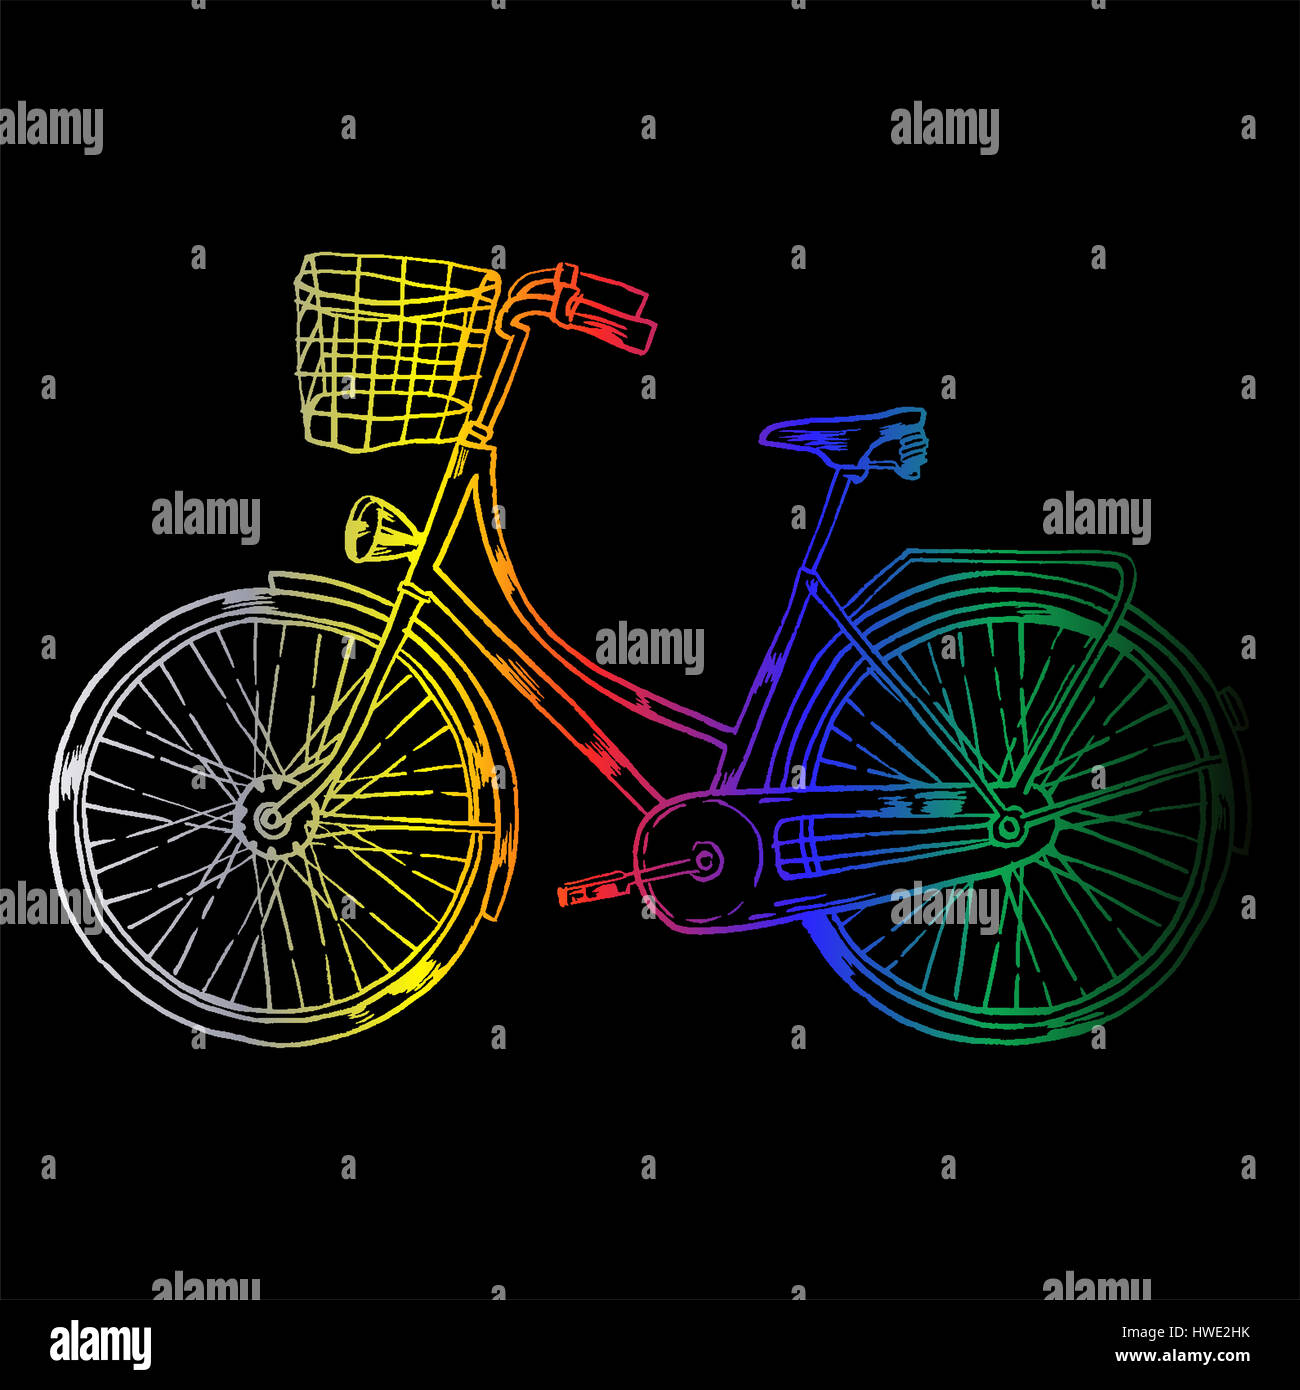 Bicycle with Cart - Stock Image